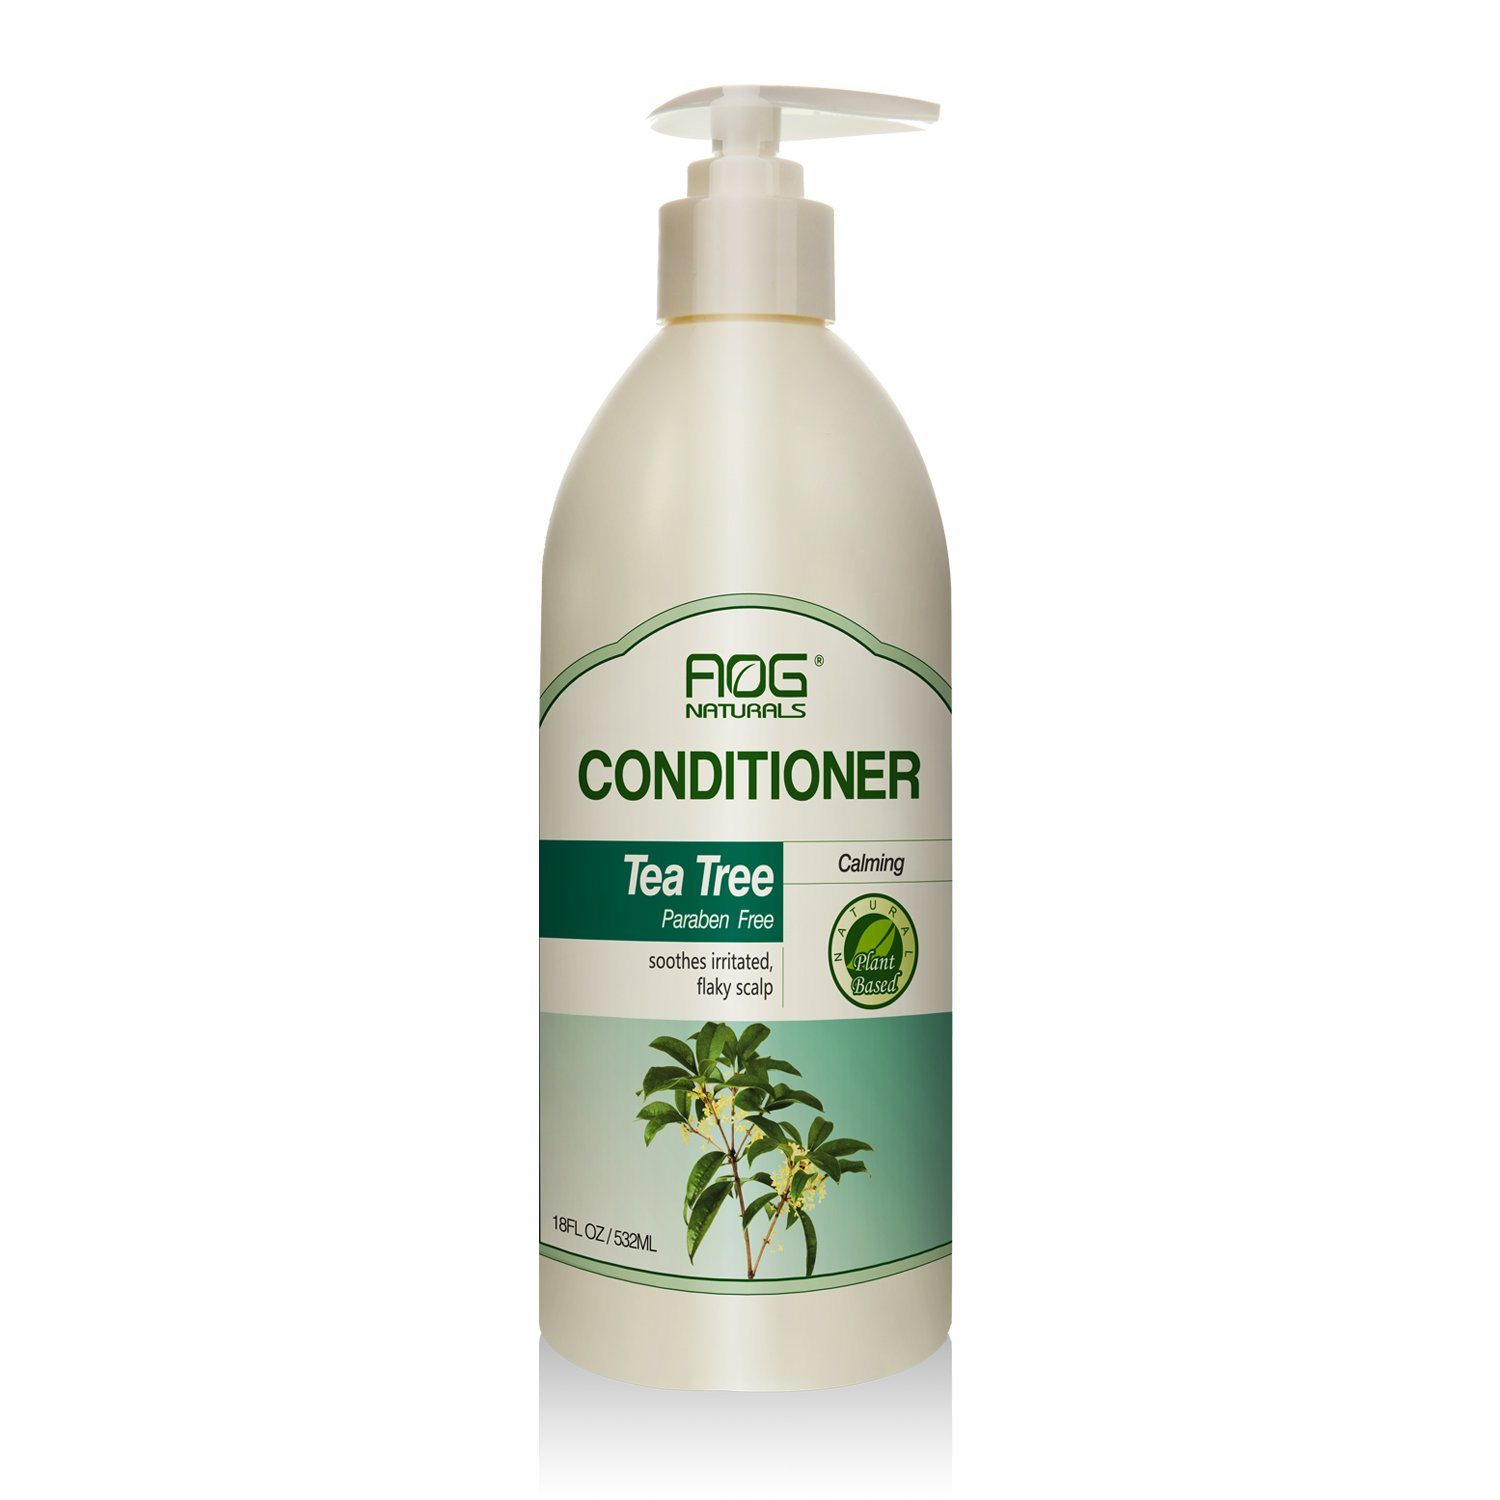 Nature's Gate Conditioner with Tea Tree for Irritated/Flaky Scalp, 18 oz